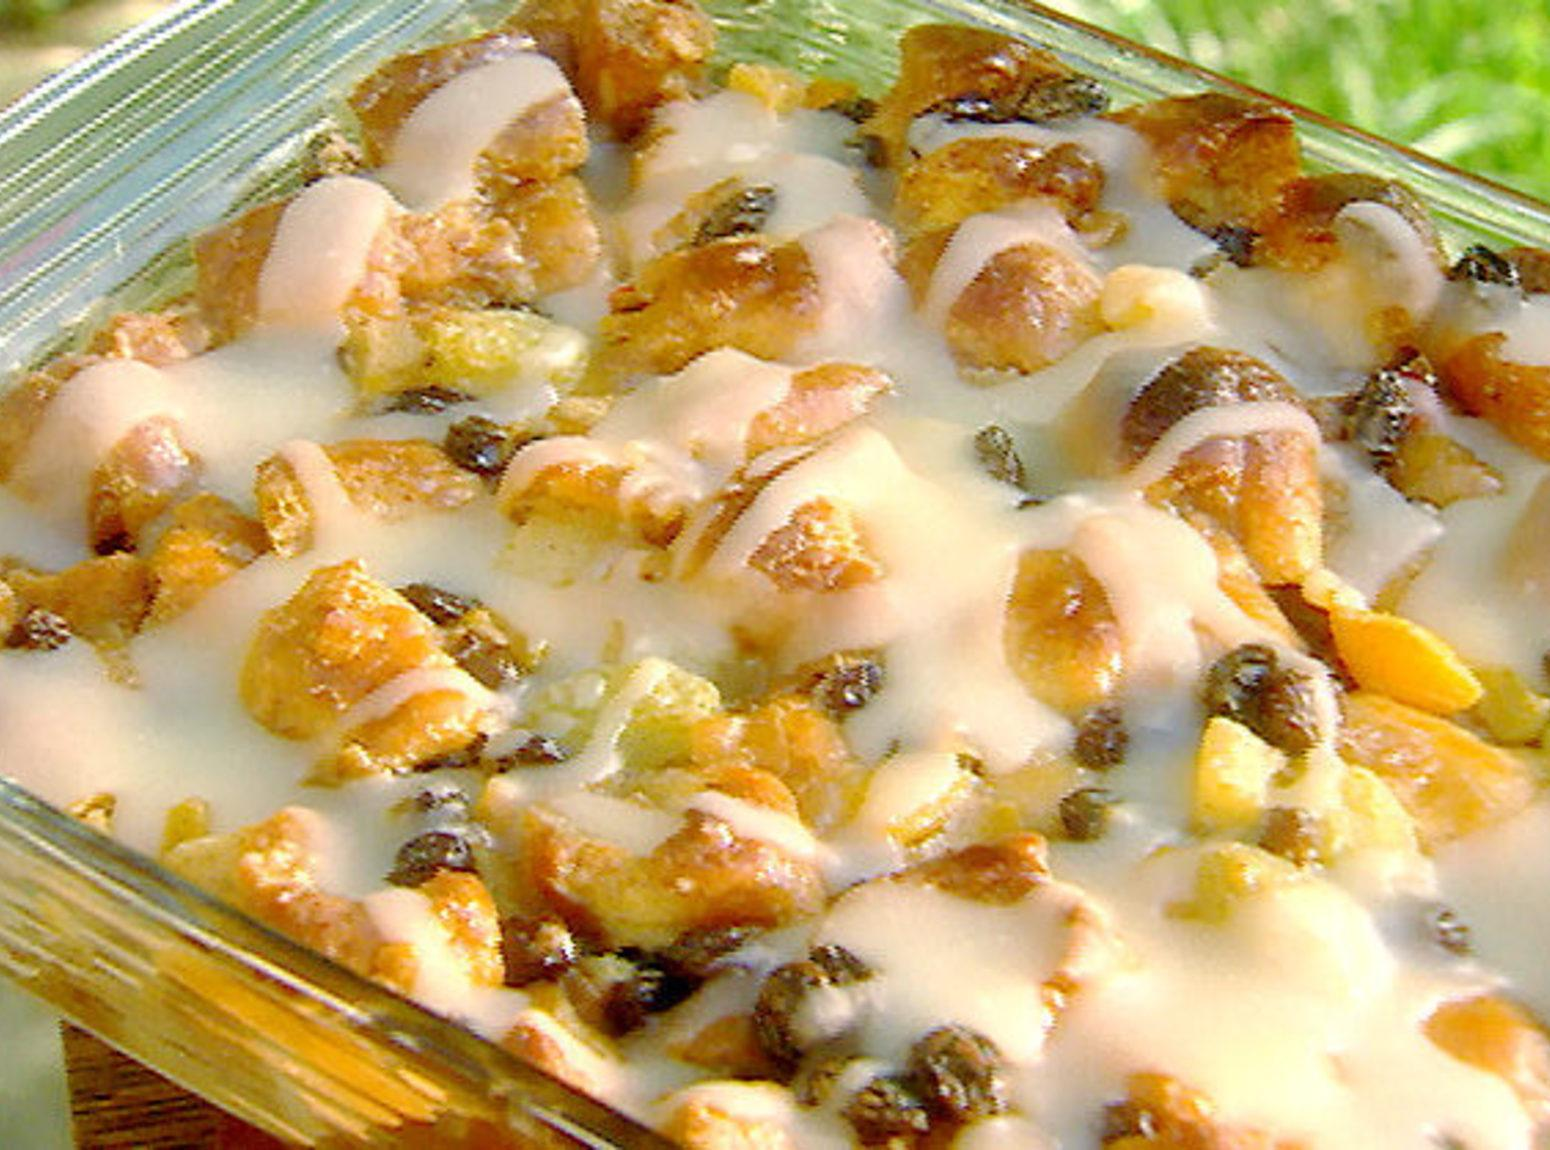 Krispy Kreme Bread Pudding with Rum Sauce Recipe